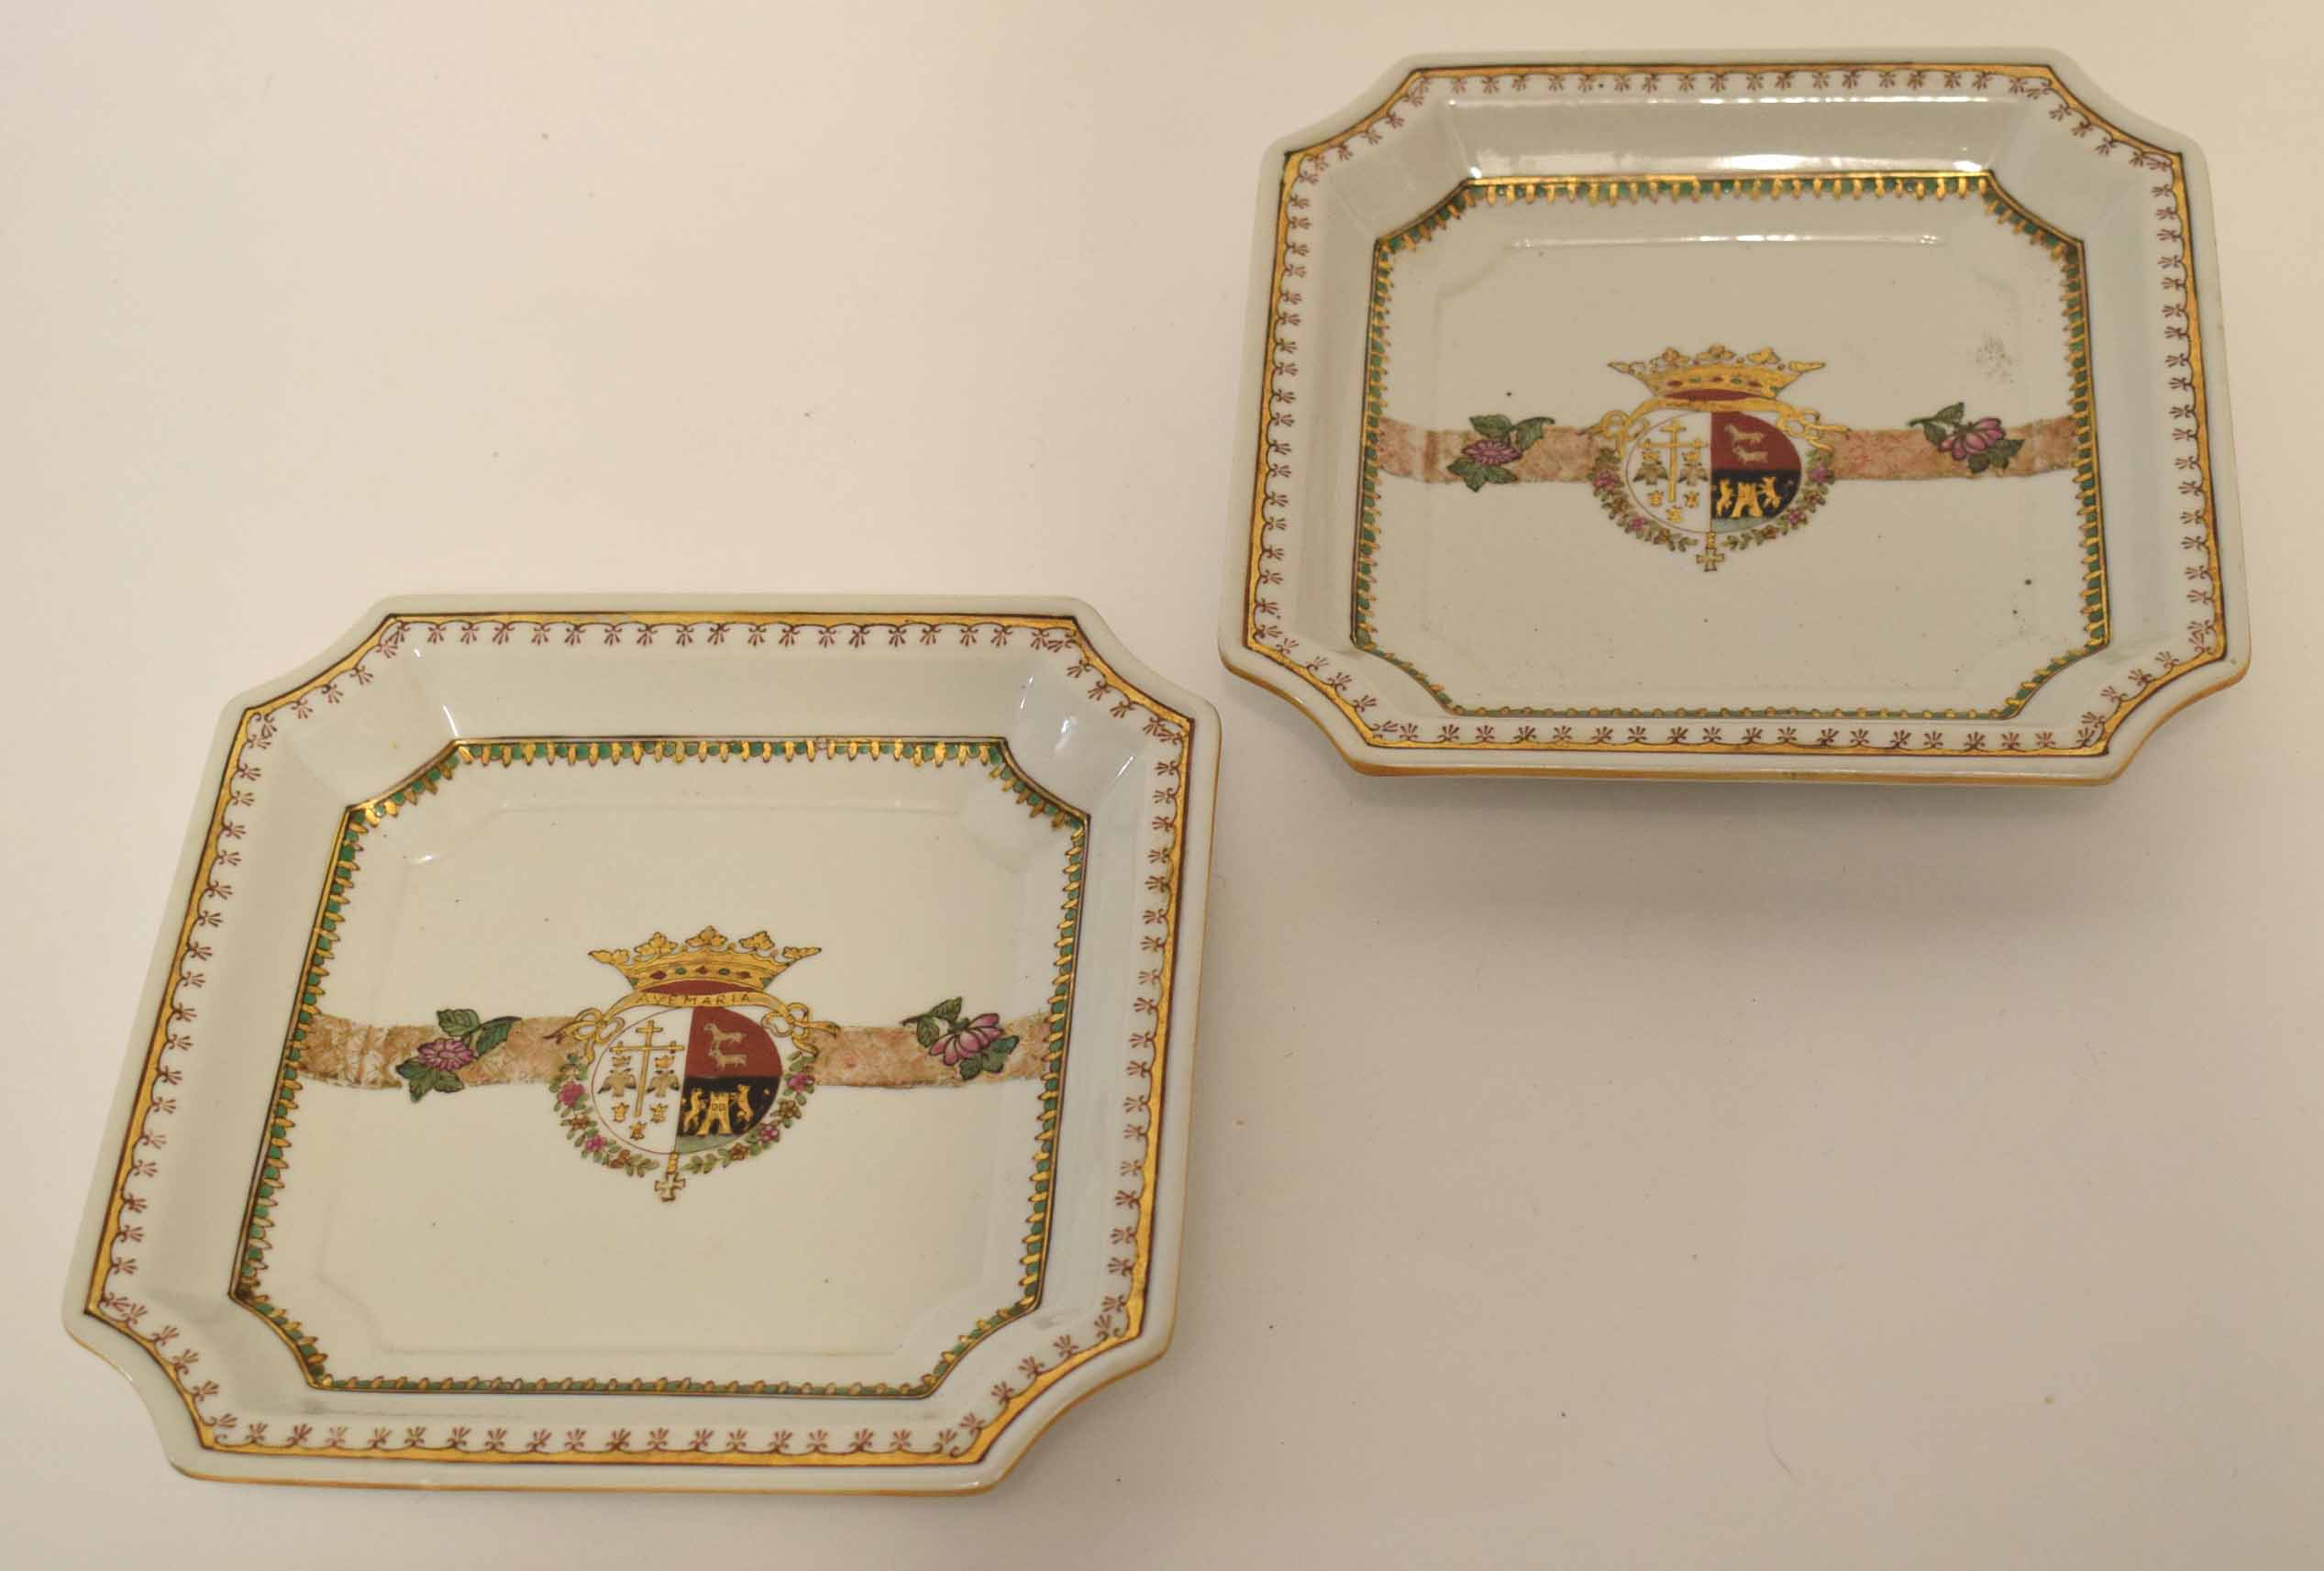 Lot 107 - Pair of quatre-lobed armorial dishes, probably Sampson, circa late 19th century, 20cm wide